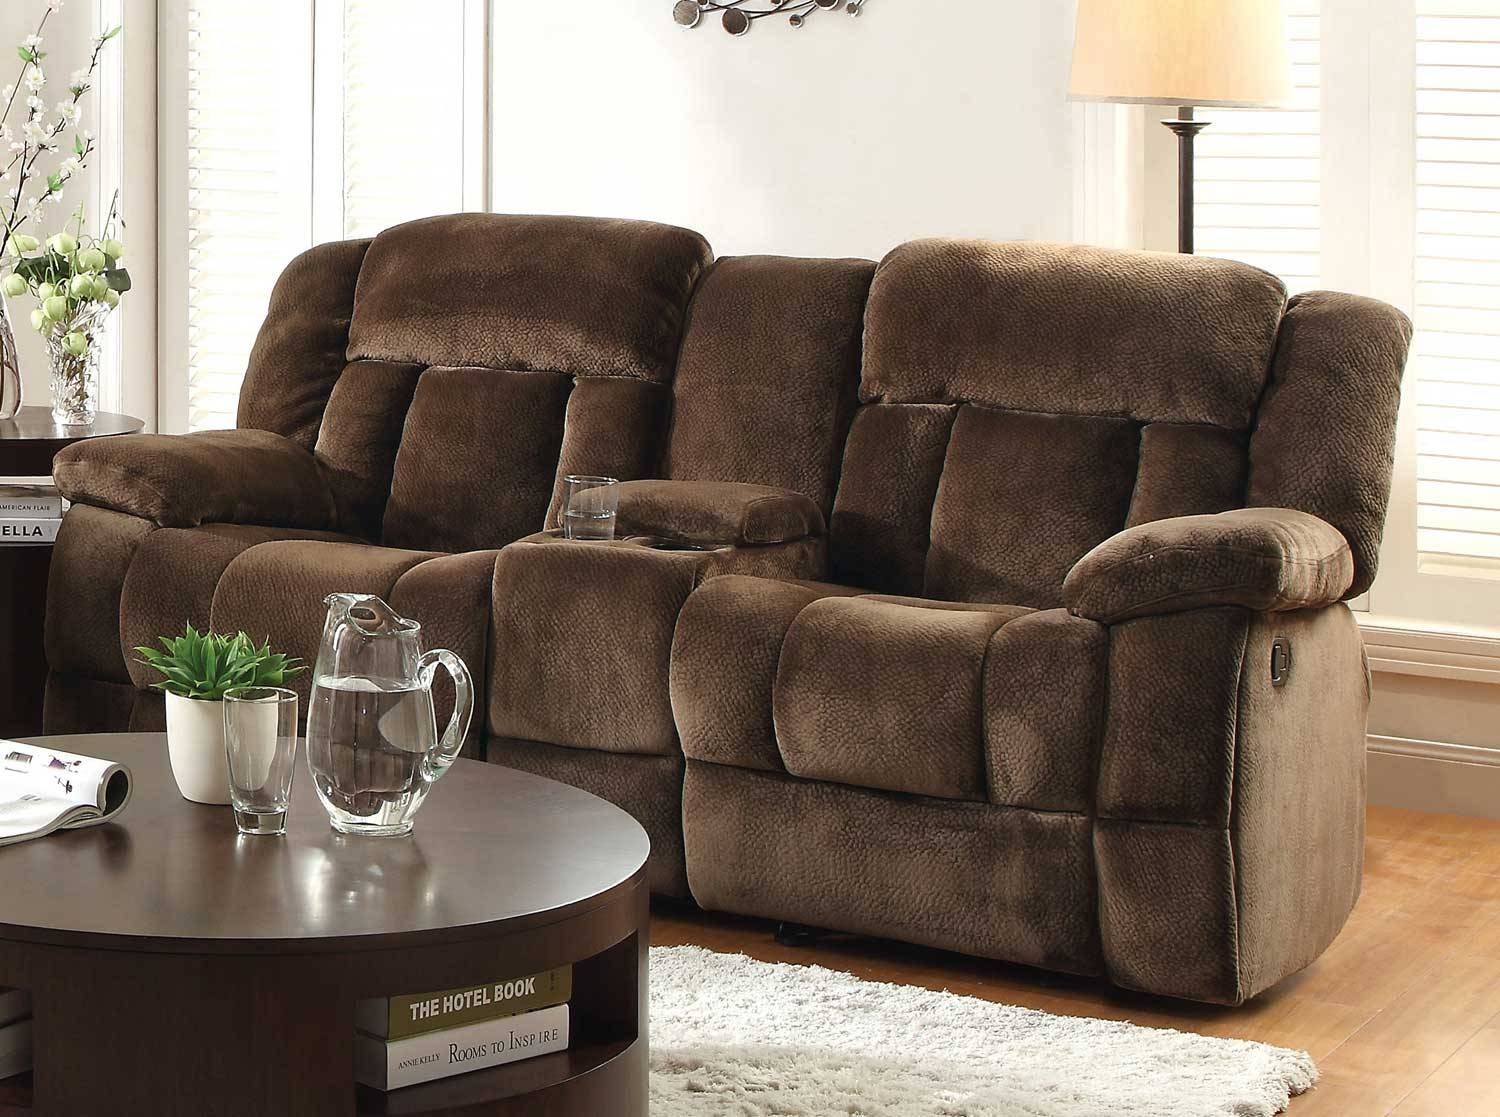 Awesome Double Recliner Sofa With Console 92 For Your Modern Sofa With Regard To Sofas With Console (View 1 of 15)